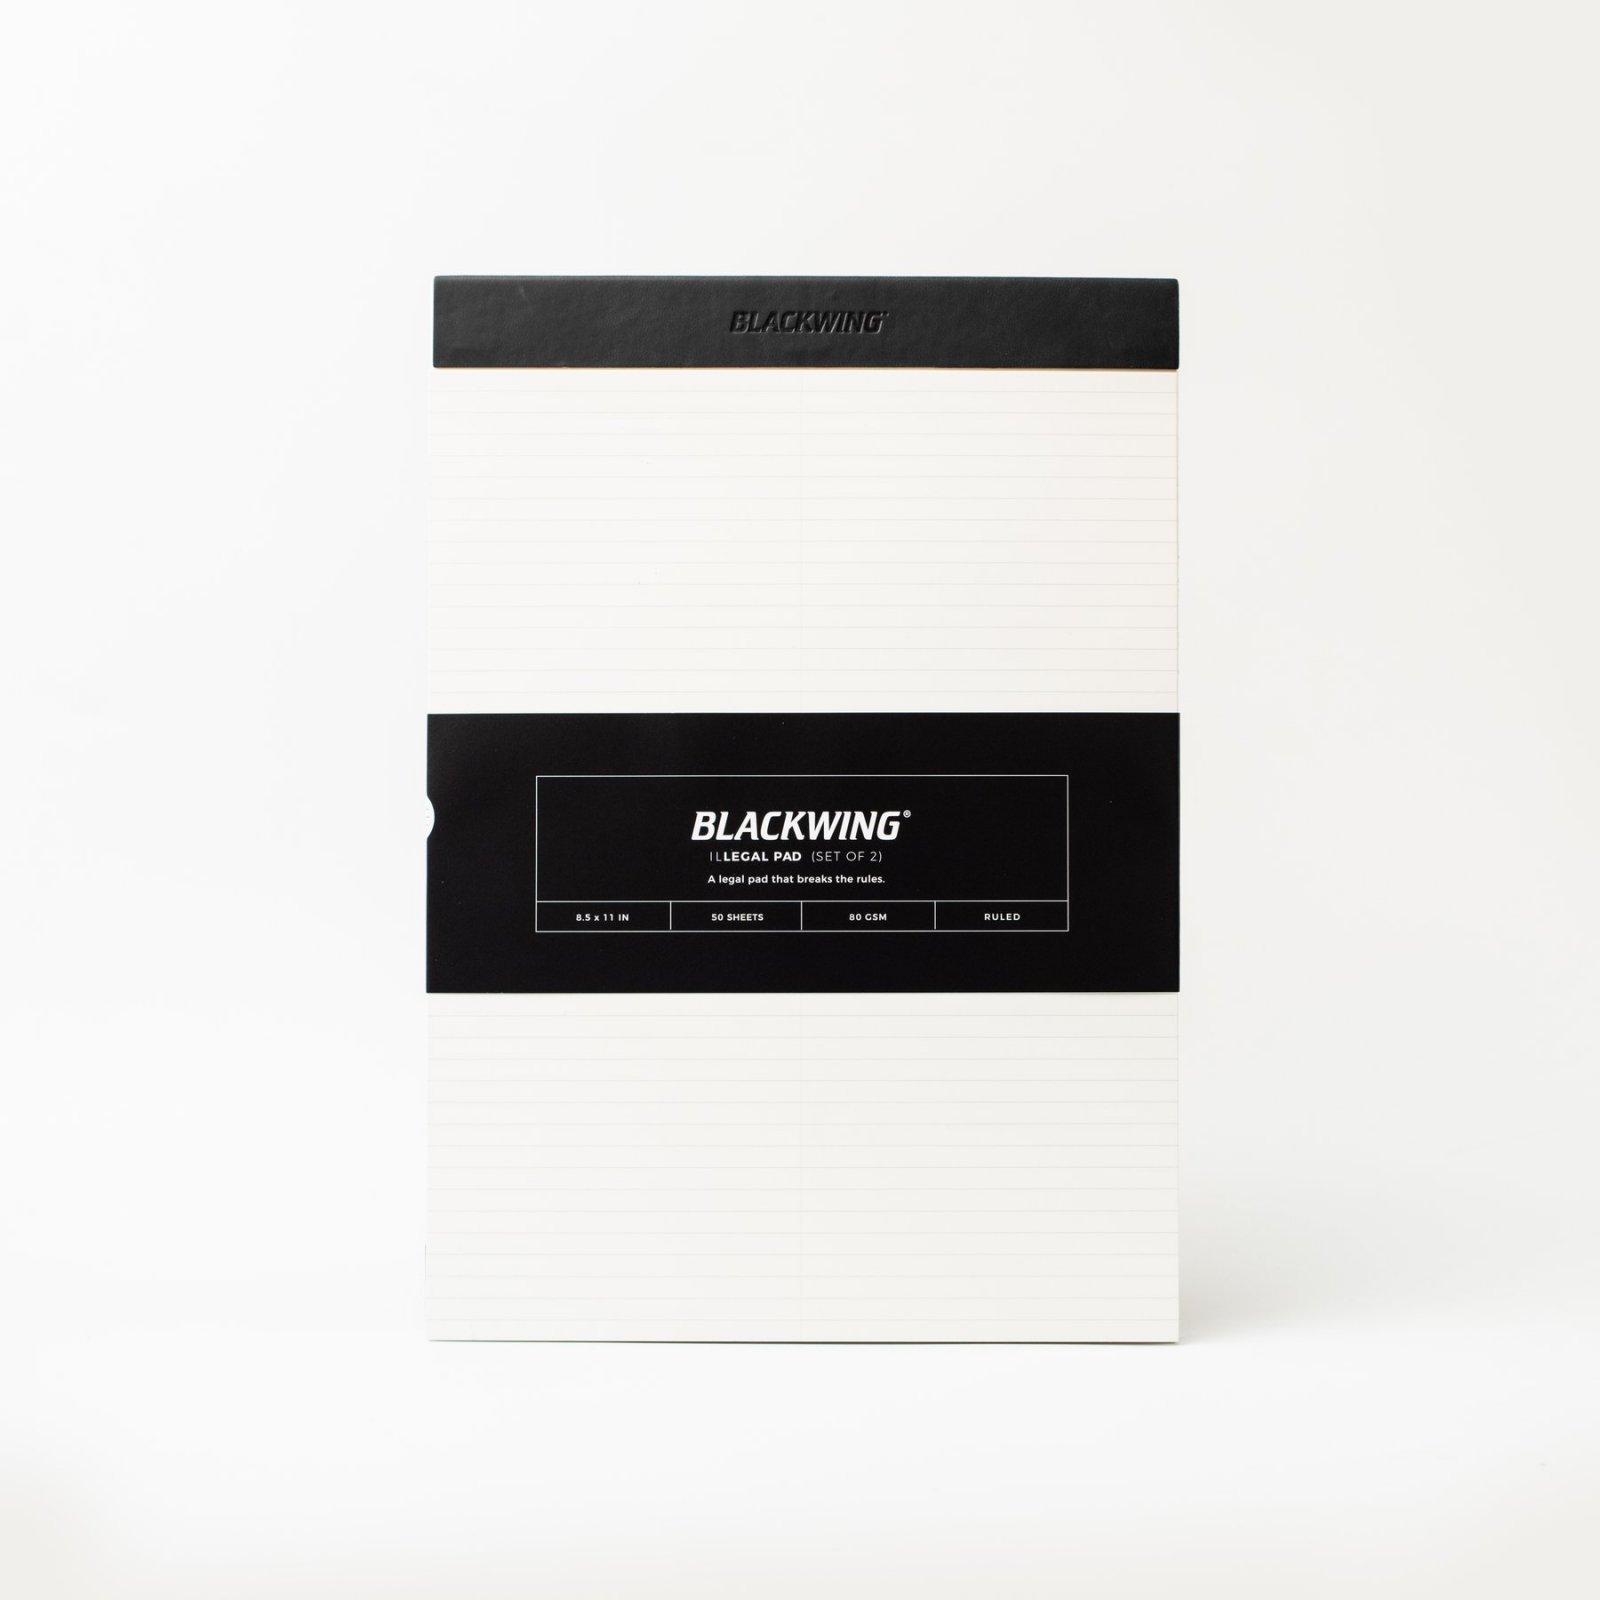 Blackwing Illegal Pad - Set of 2 - Ruled Pages